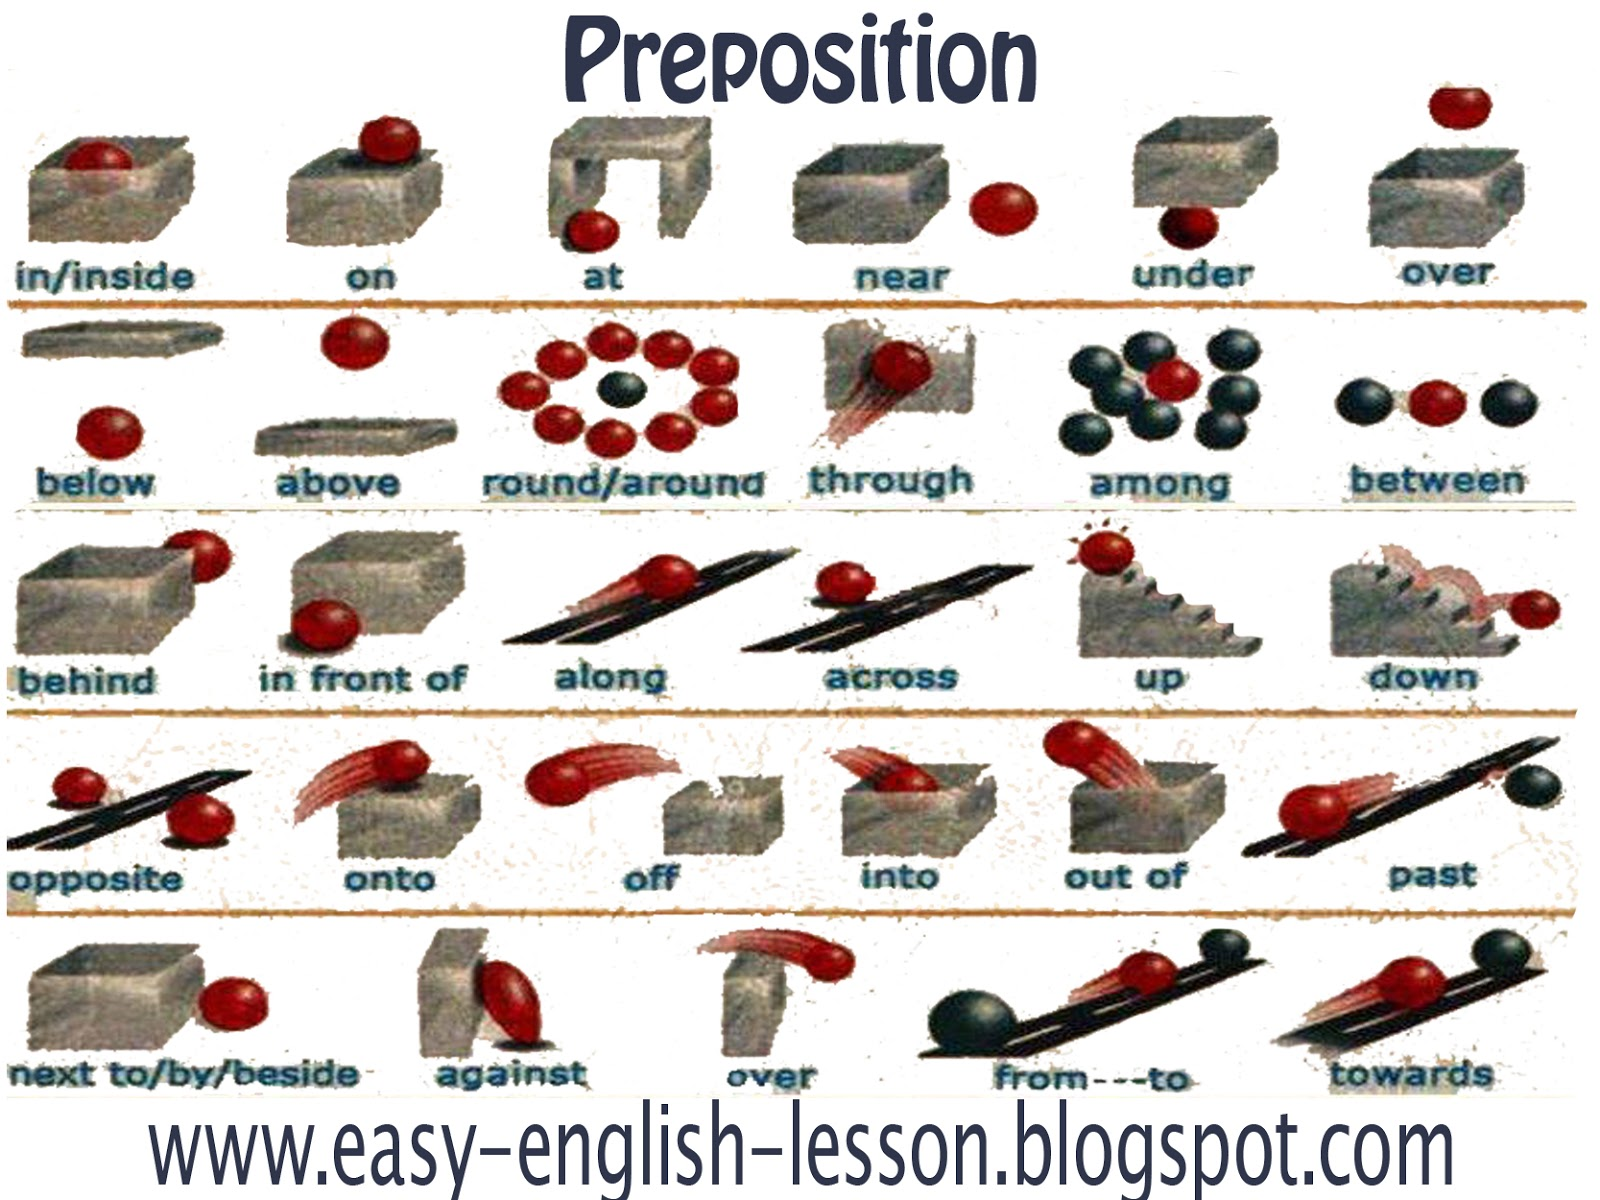 Example Of A Preposition In Sentence With Image